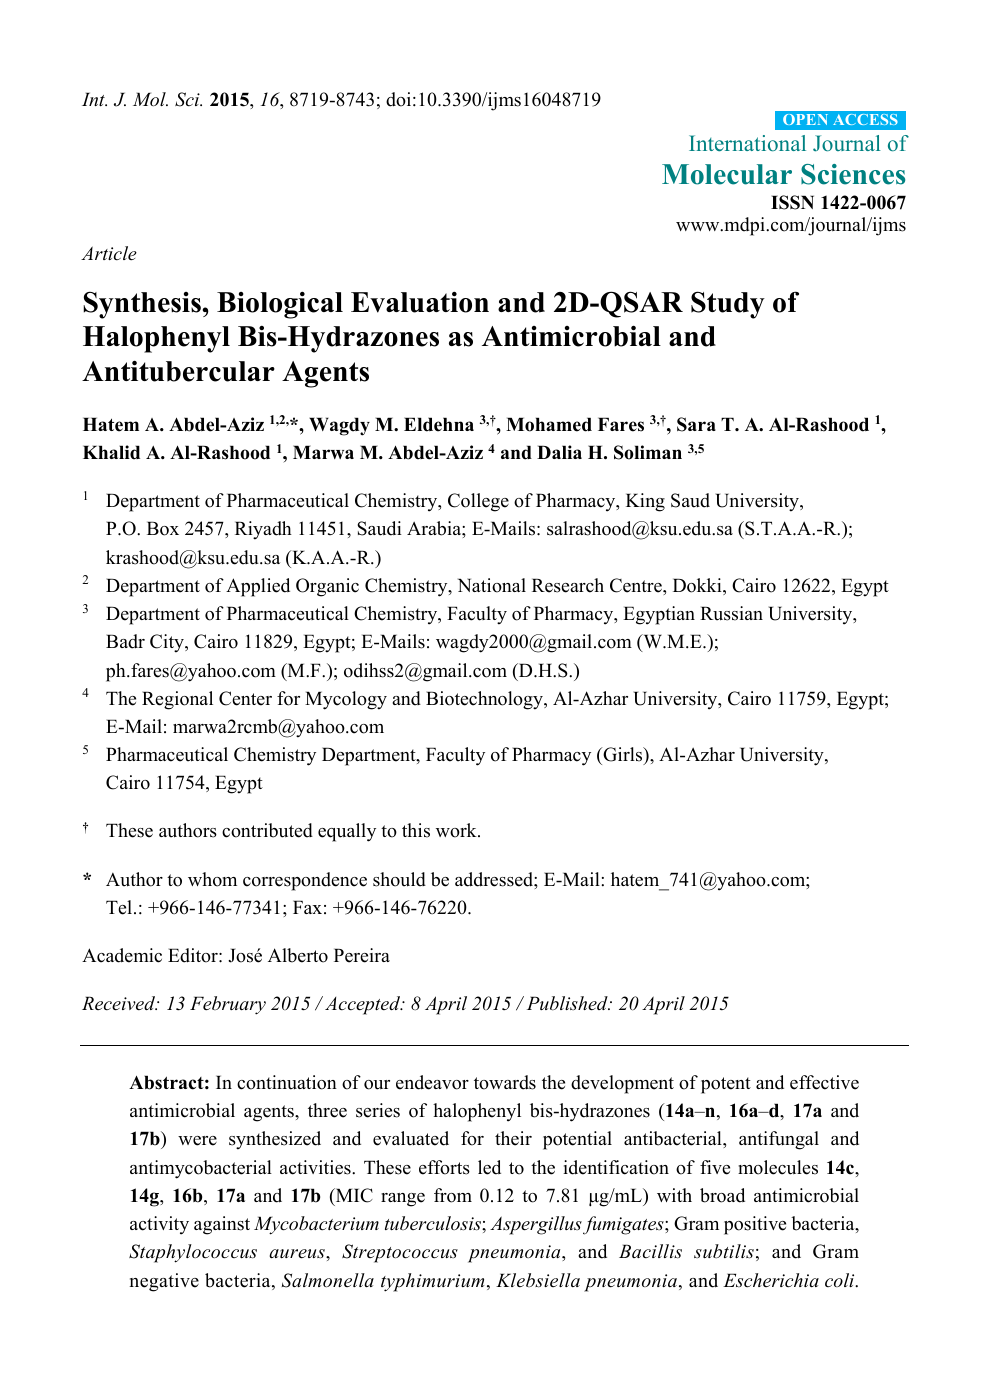 Synthesis, Biological Evaluation and 2D-QSAR Study of